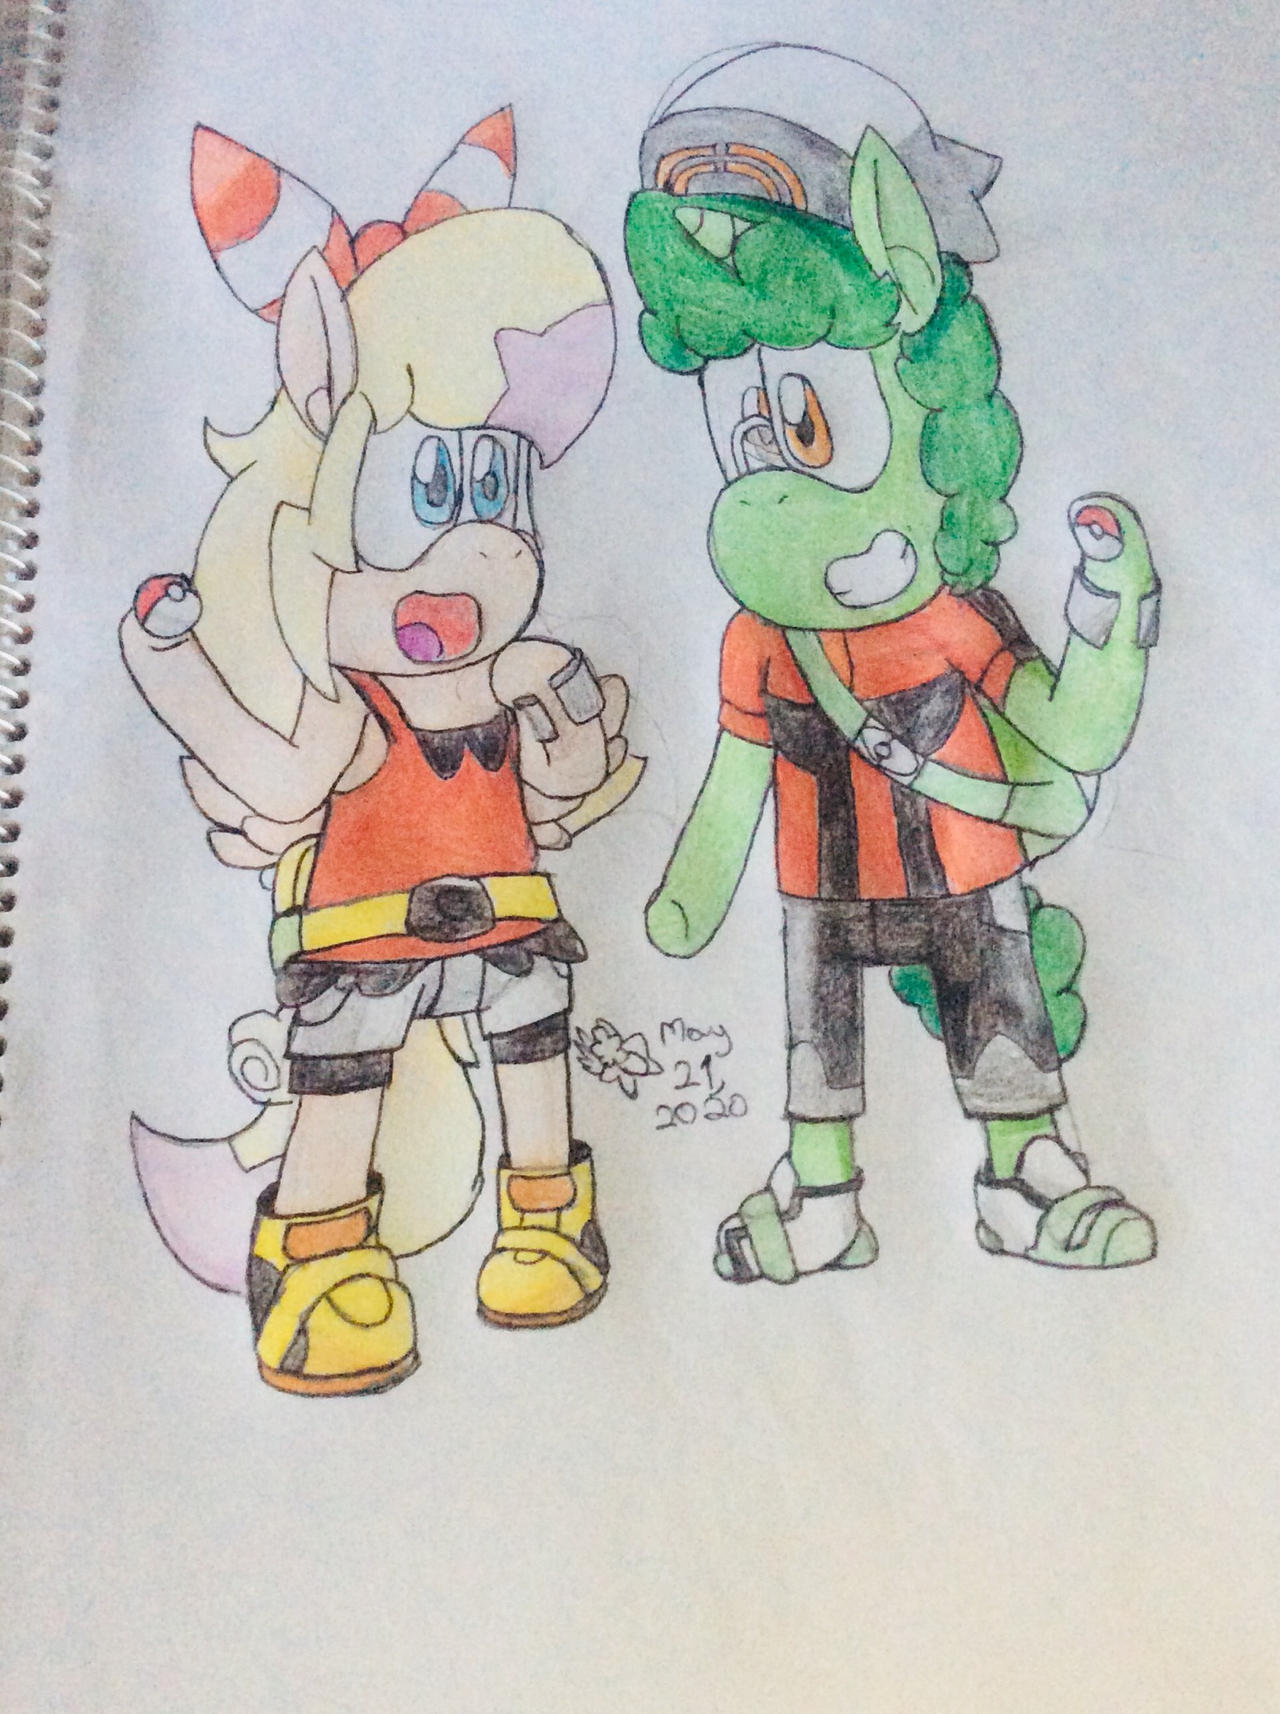 ORAS Derp Rose and Archie